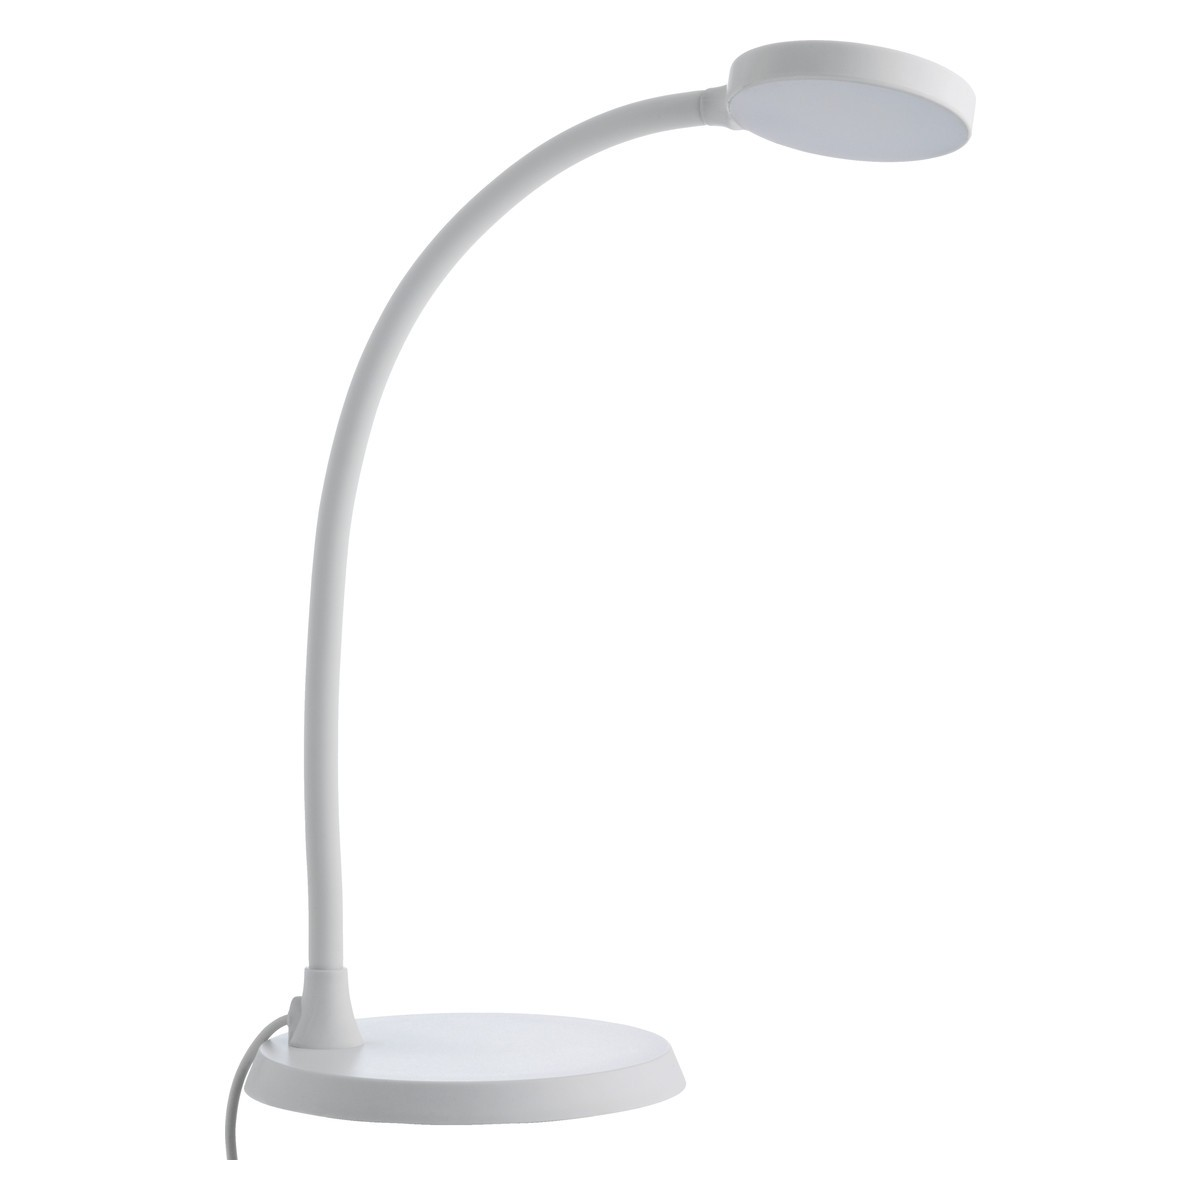 10 things to consider before purchasing Touch desk lamp